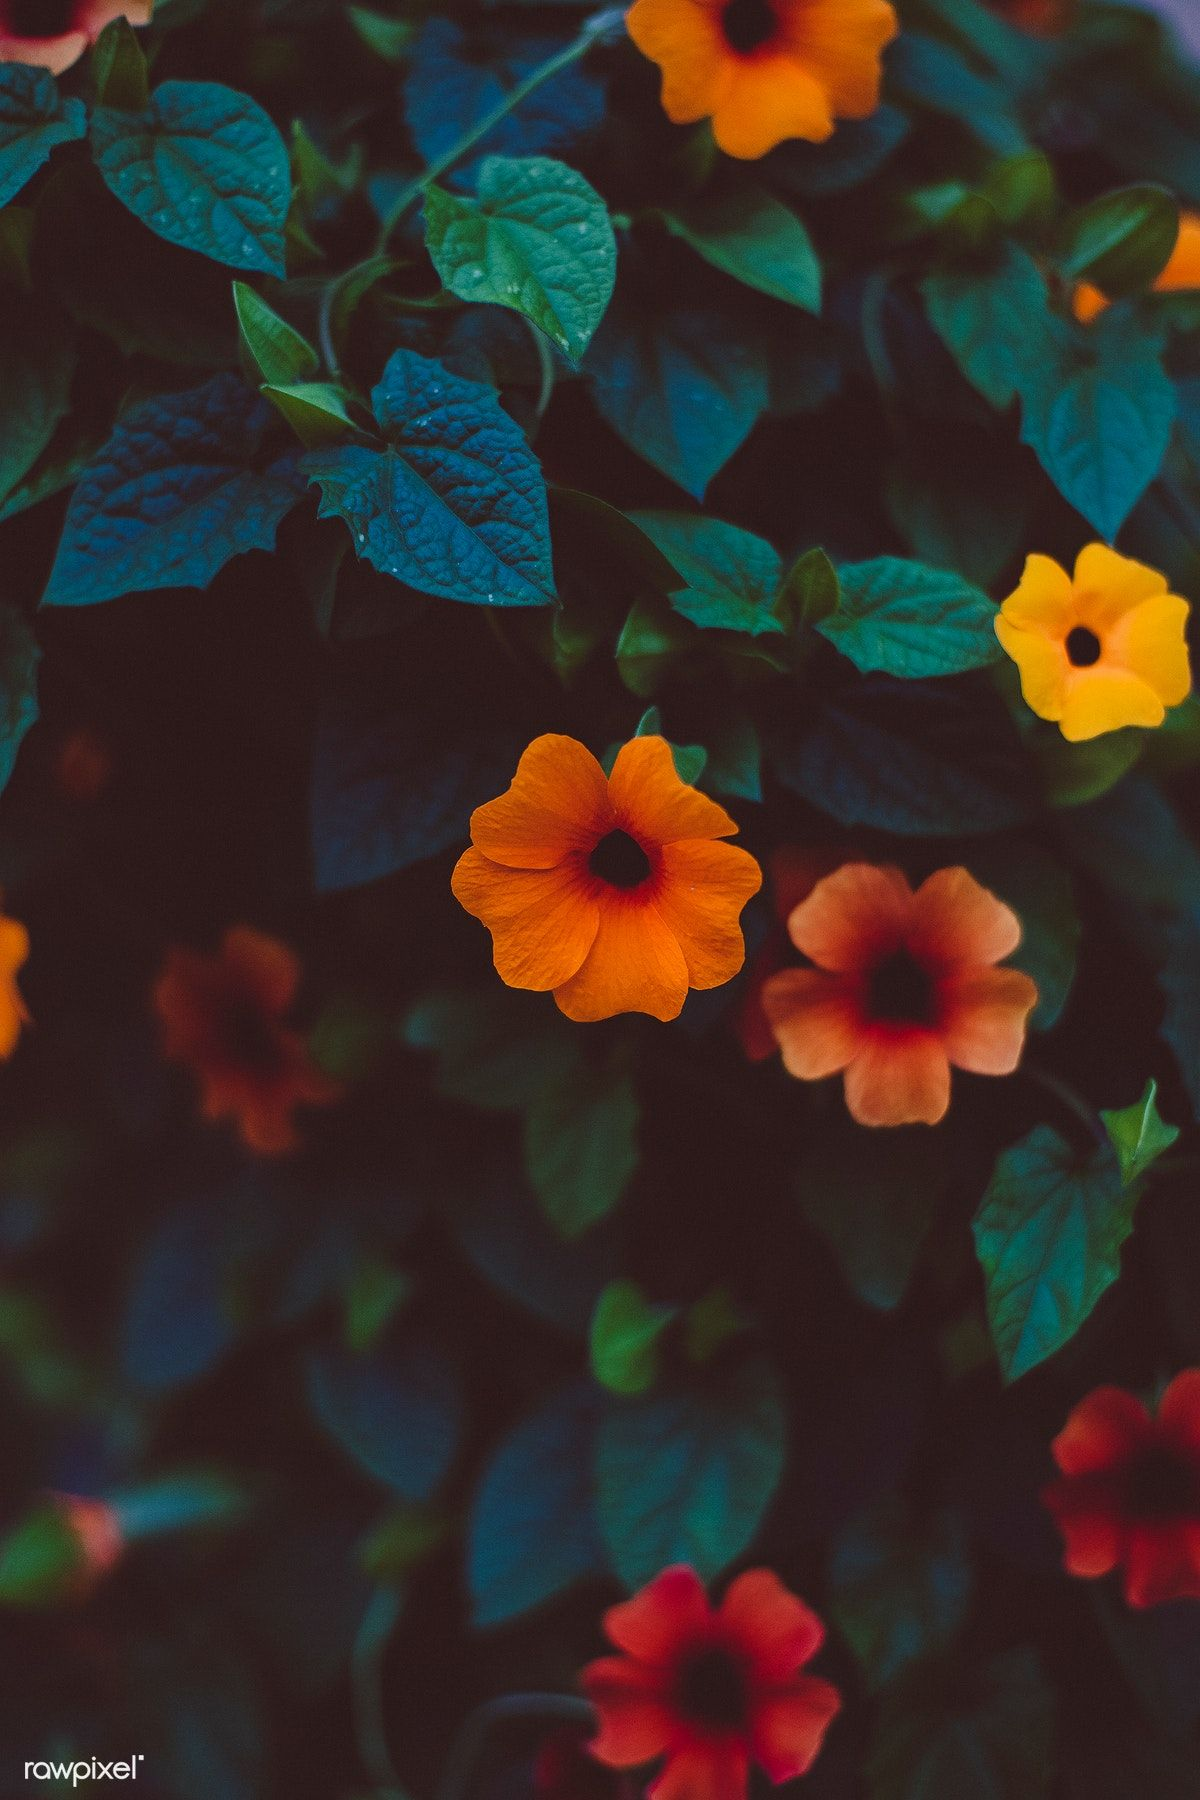 Colorful Flowers On A Bush Free Image By Rawpixel Com Markus Spiske Flowers Photography Wallpaper Photography Wallpaper Beauty Iphone Wallpaper